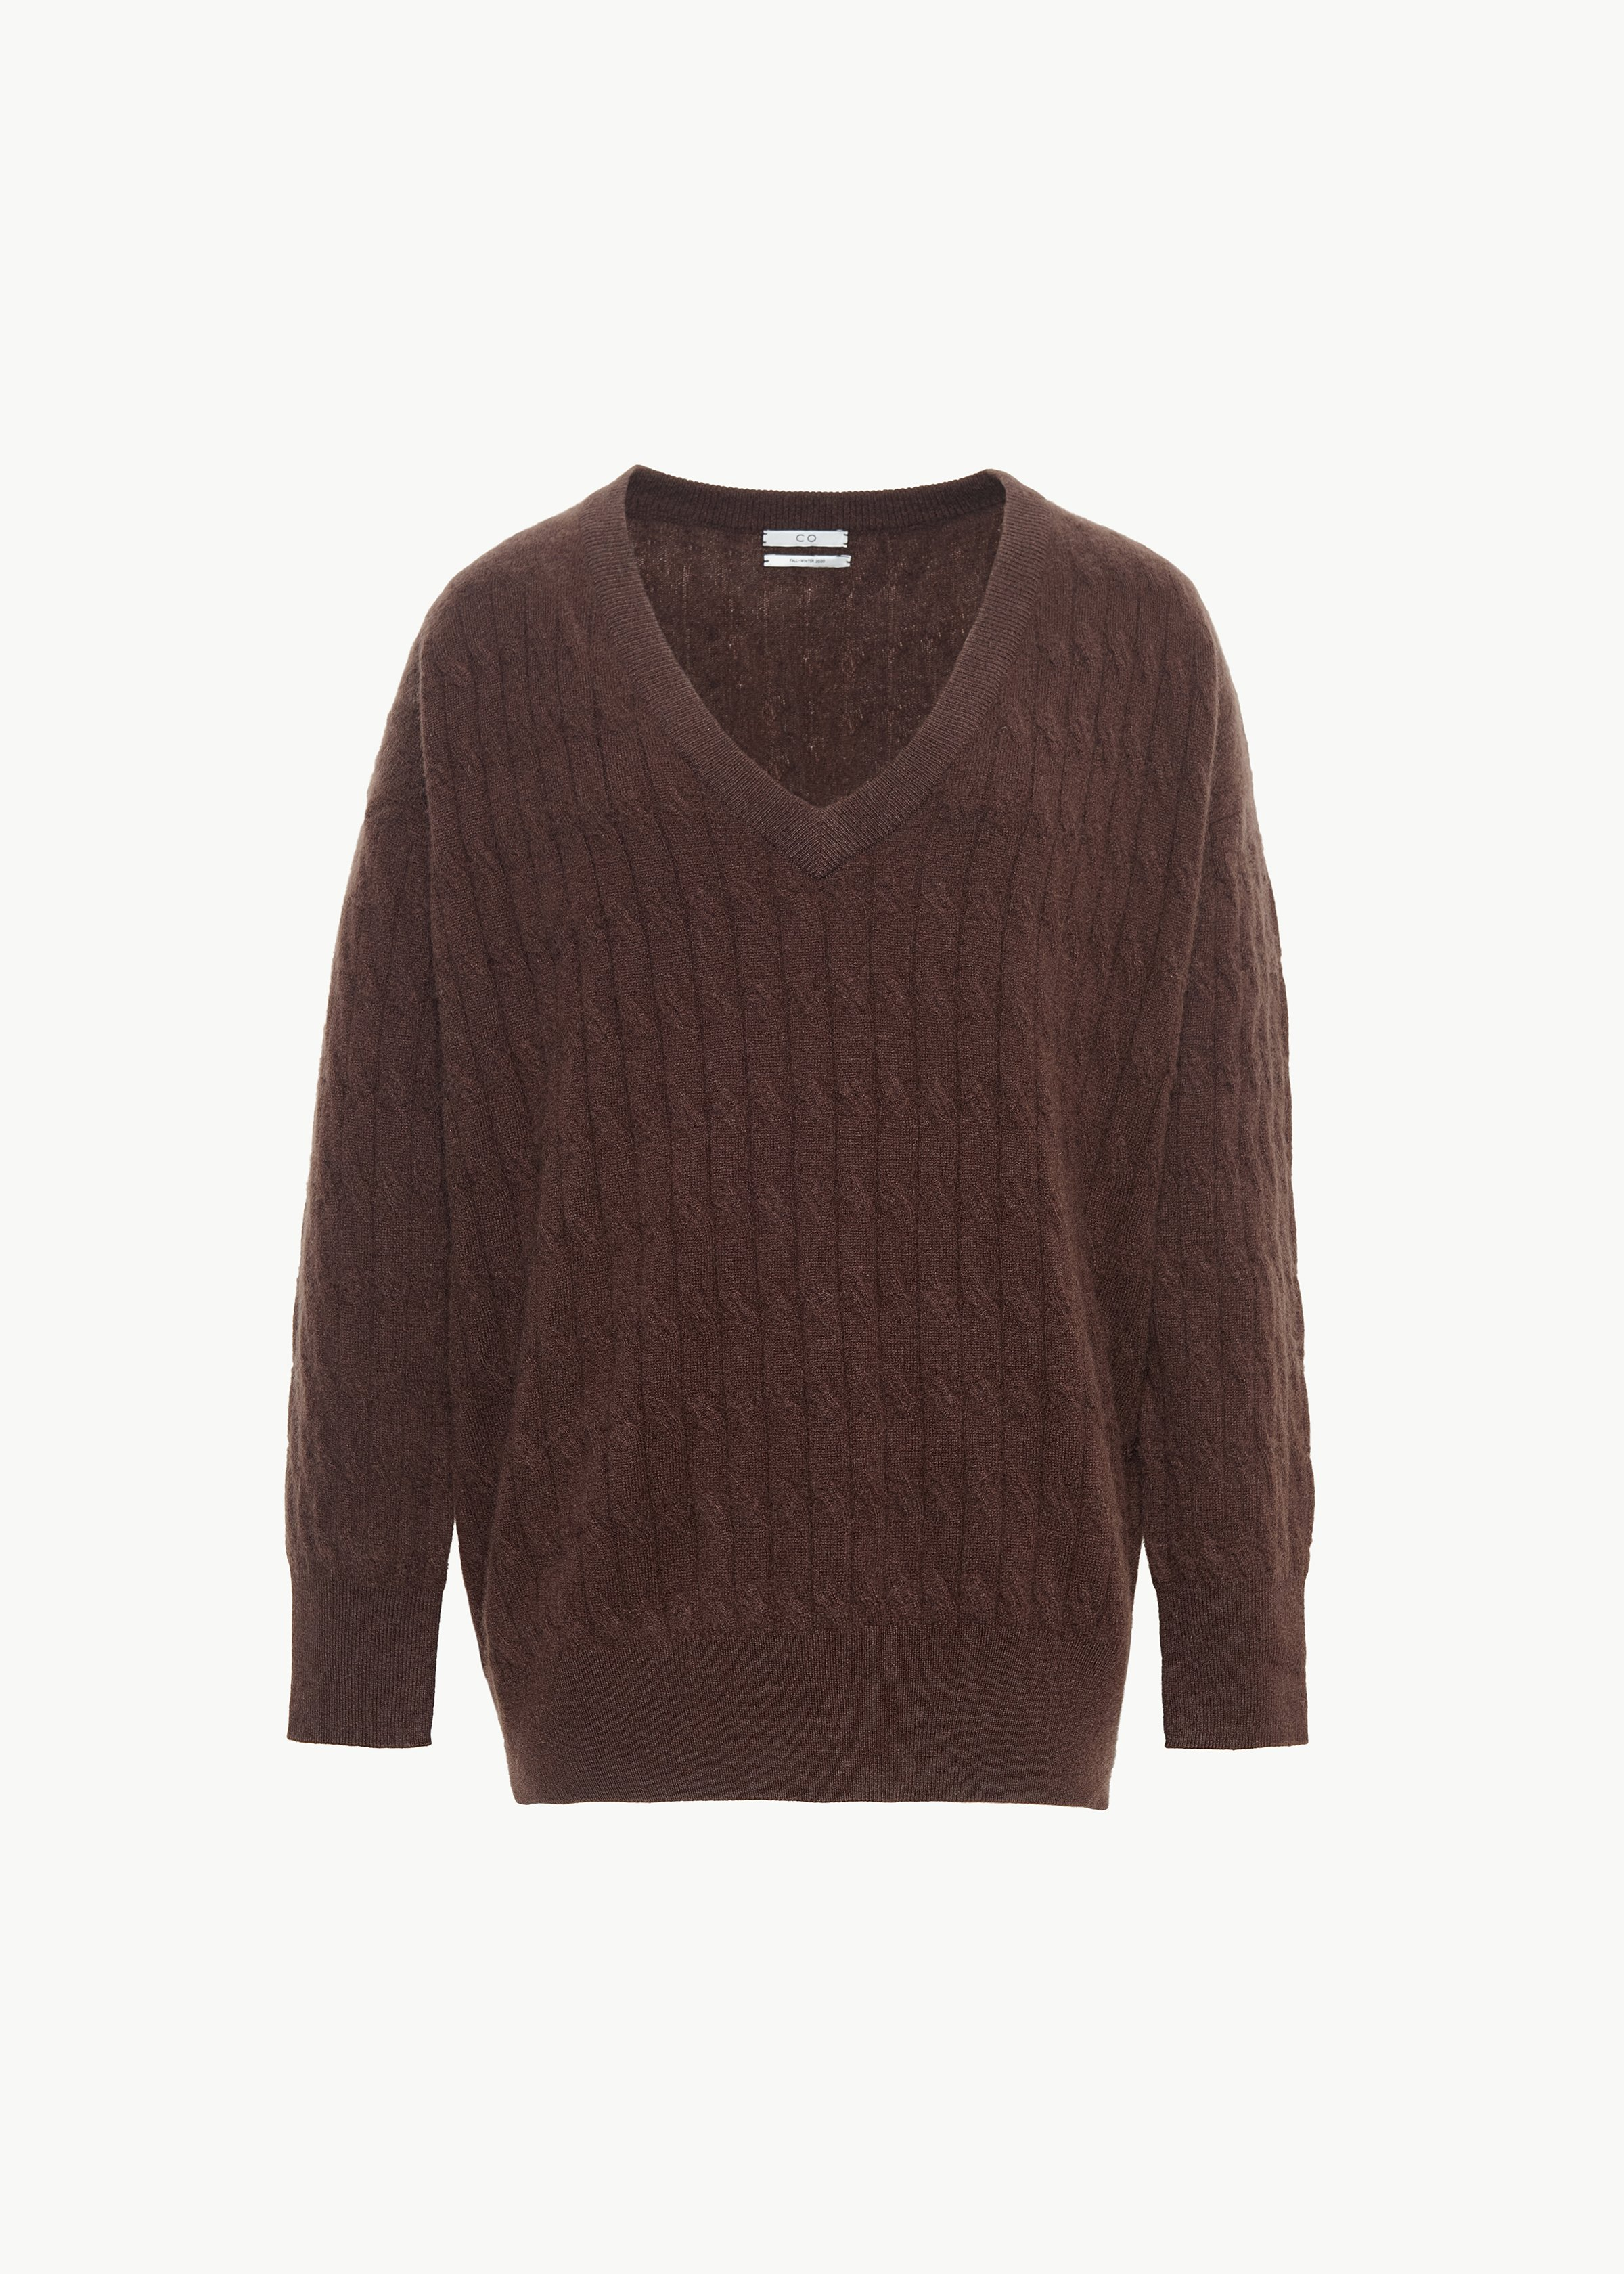 Cable Knit V Neck Sweater in Cashmere - Sand in Chocolate by Co Collections